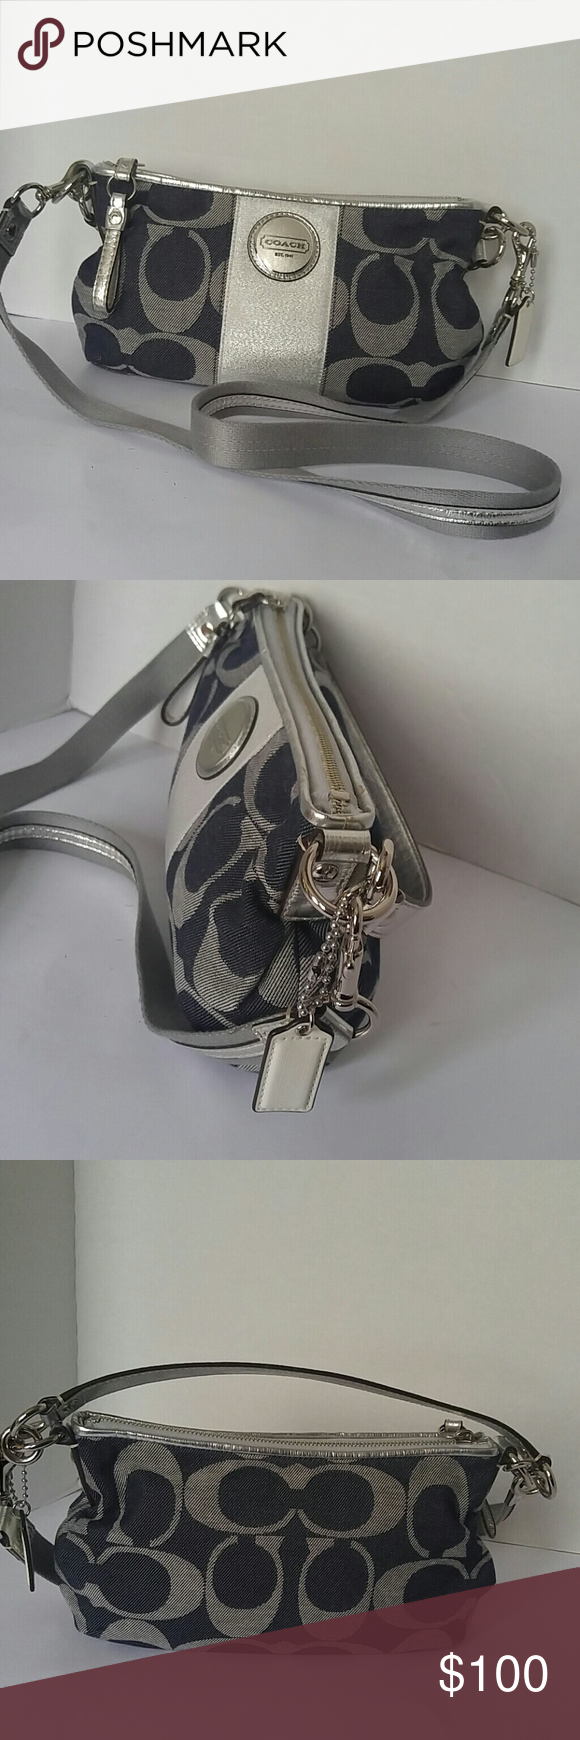 """COACH-AUTHENTIC-Crossbody Retail $ 178.00 Very cute Crossbody with silver accents & hardwear. Blue denium with silver & cream """"c"""" signature. Fob on side of bag. Top zip to main compartment. Interior navy lining, pouch & zip compartment. Bag is clean inside And out. H- Aprox 7 inches. L-Aprox. 12. inches. W- Aprox 4 inches Handle - Aprox 8 inches/ Strap- Aprox 23. inches COACH Bags Crossbody Bags"""